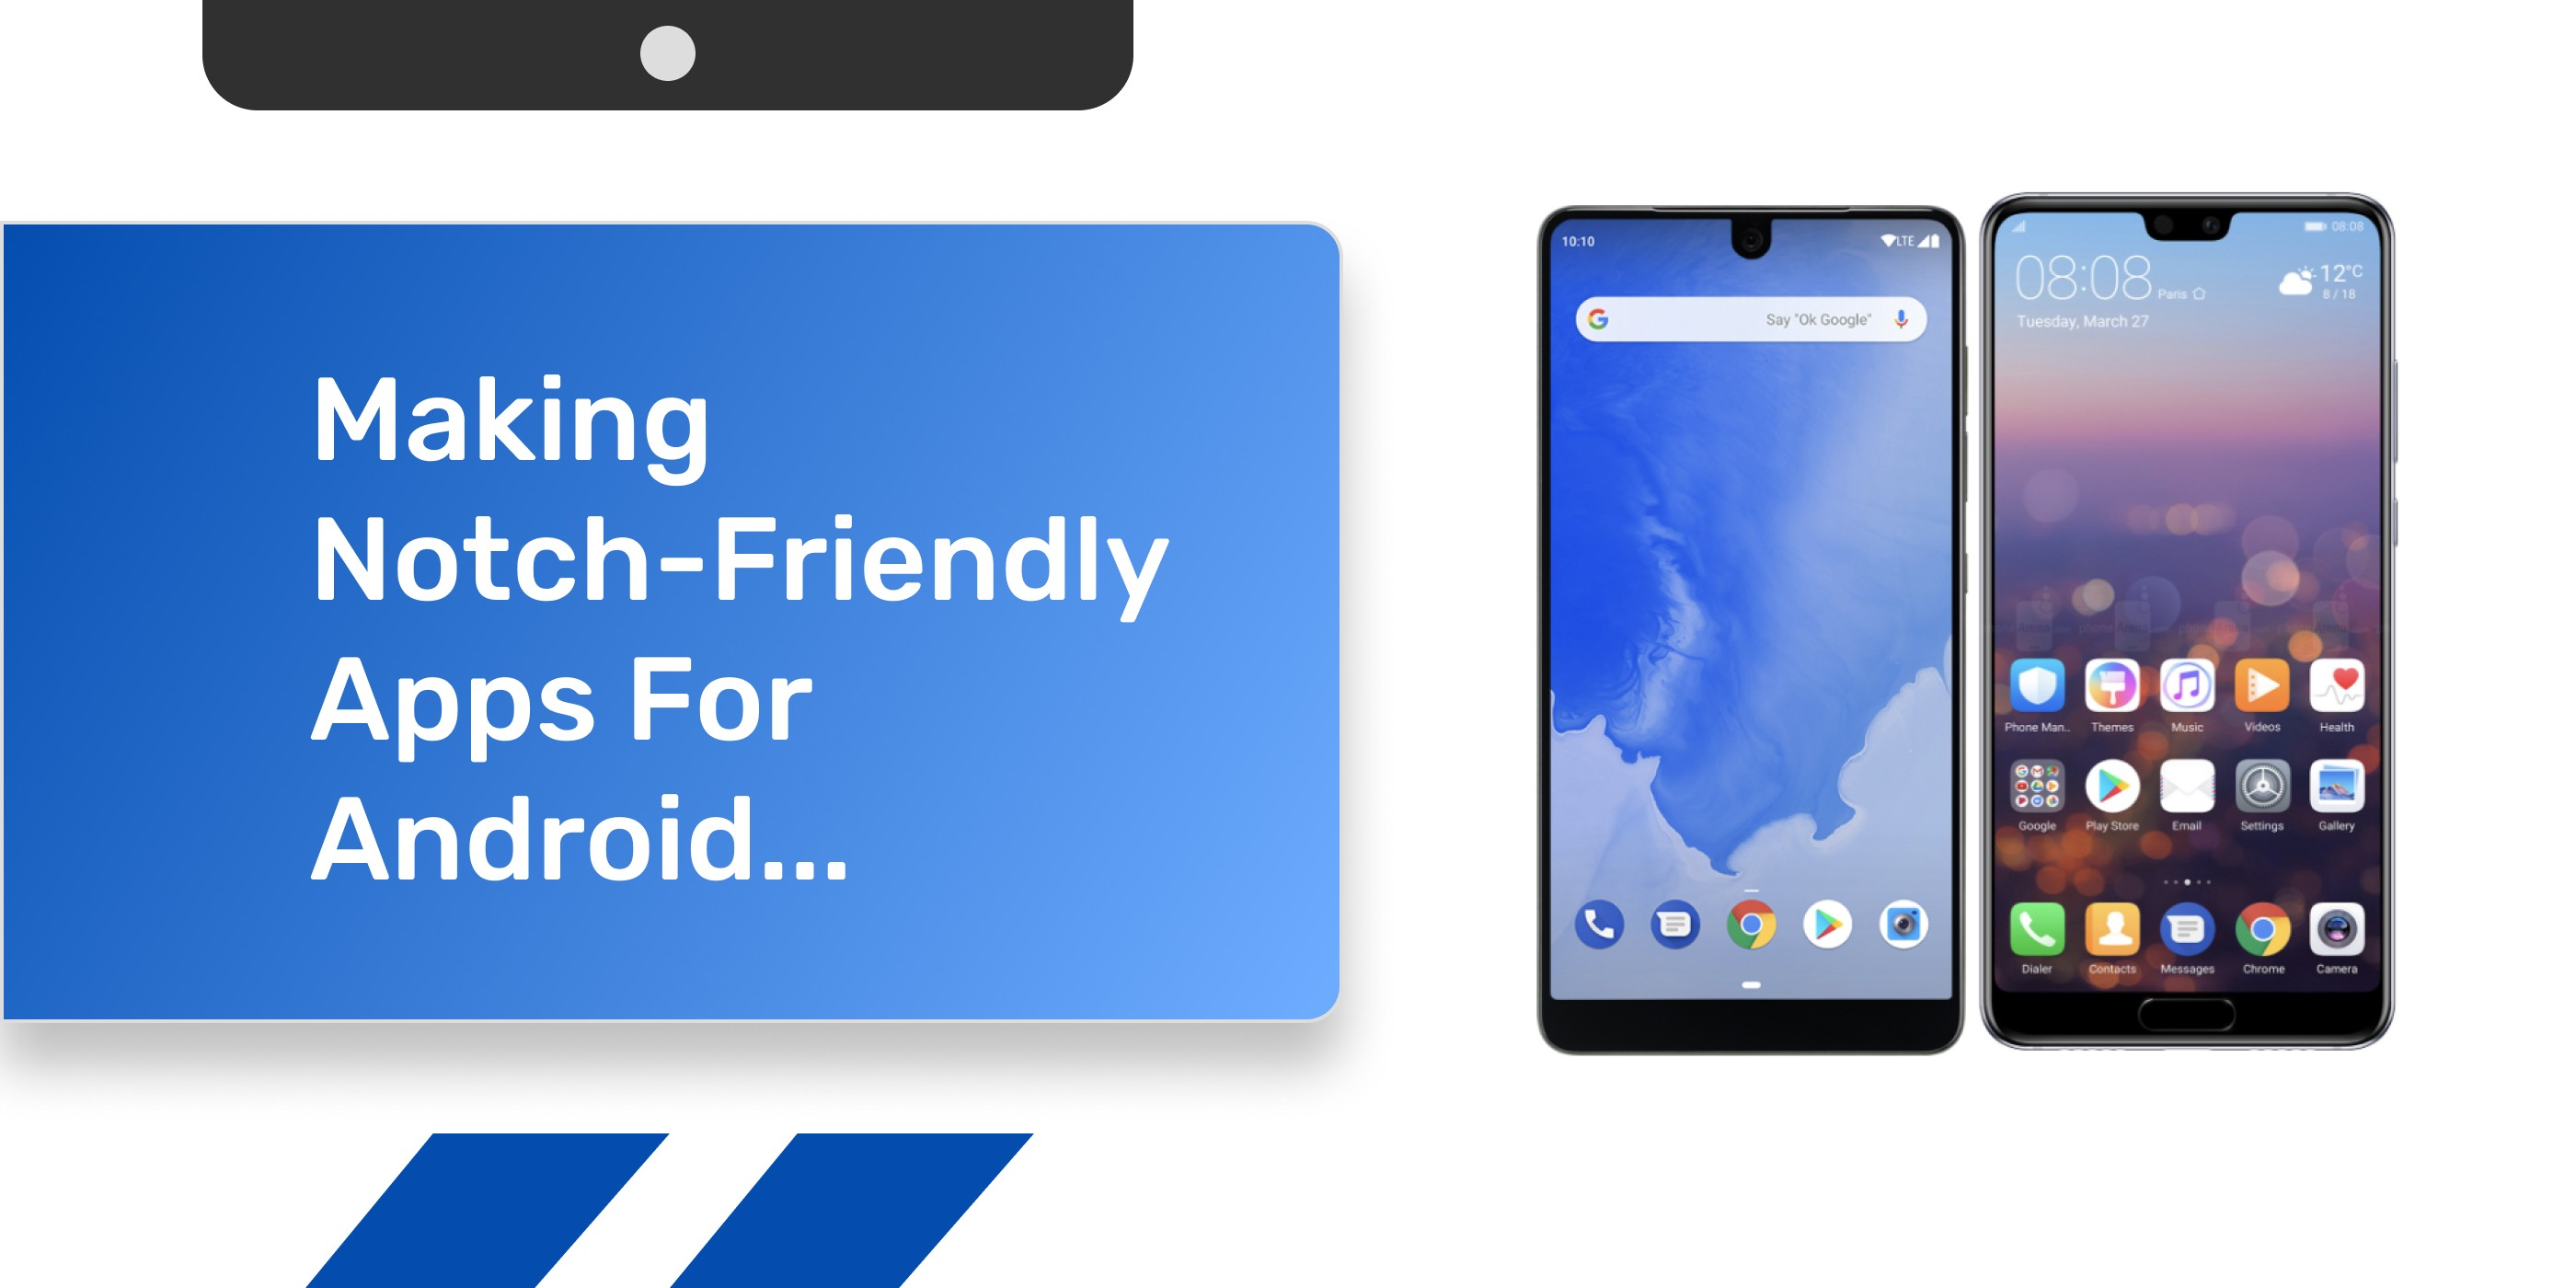 Making Notch-Friendly Apps For Android… - ProAndroidDev